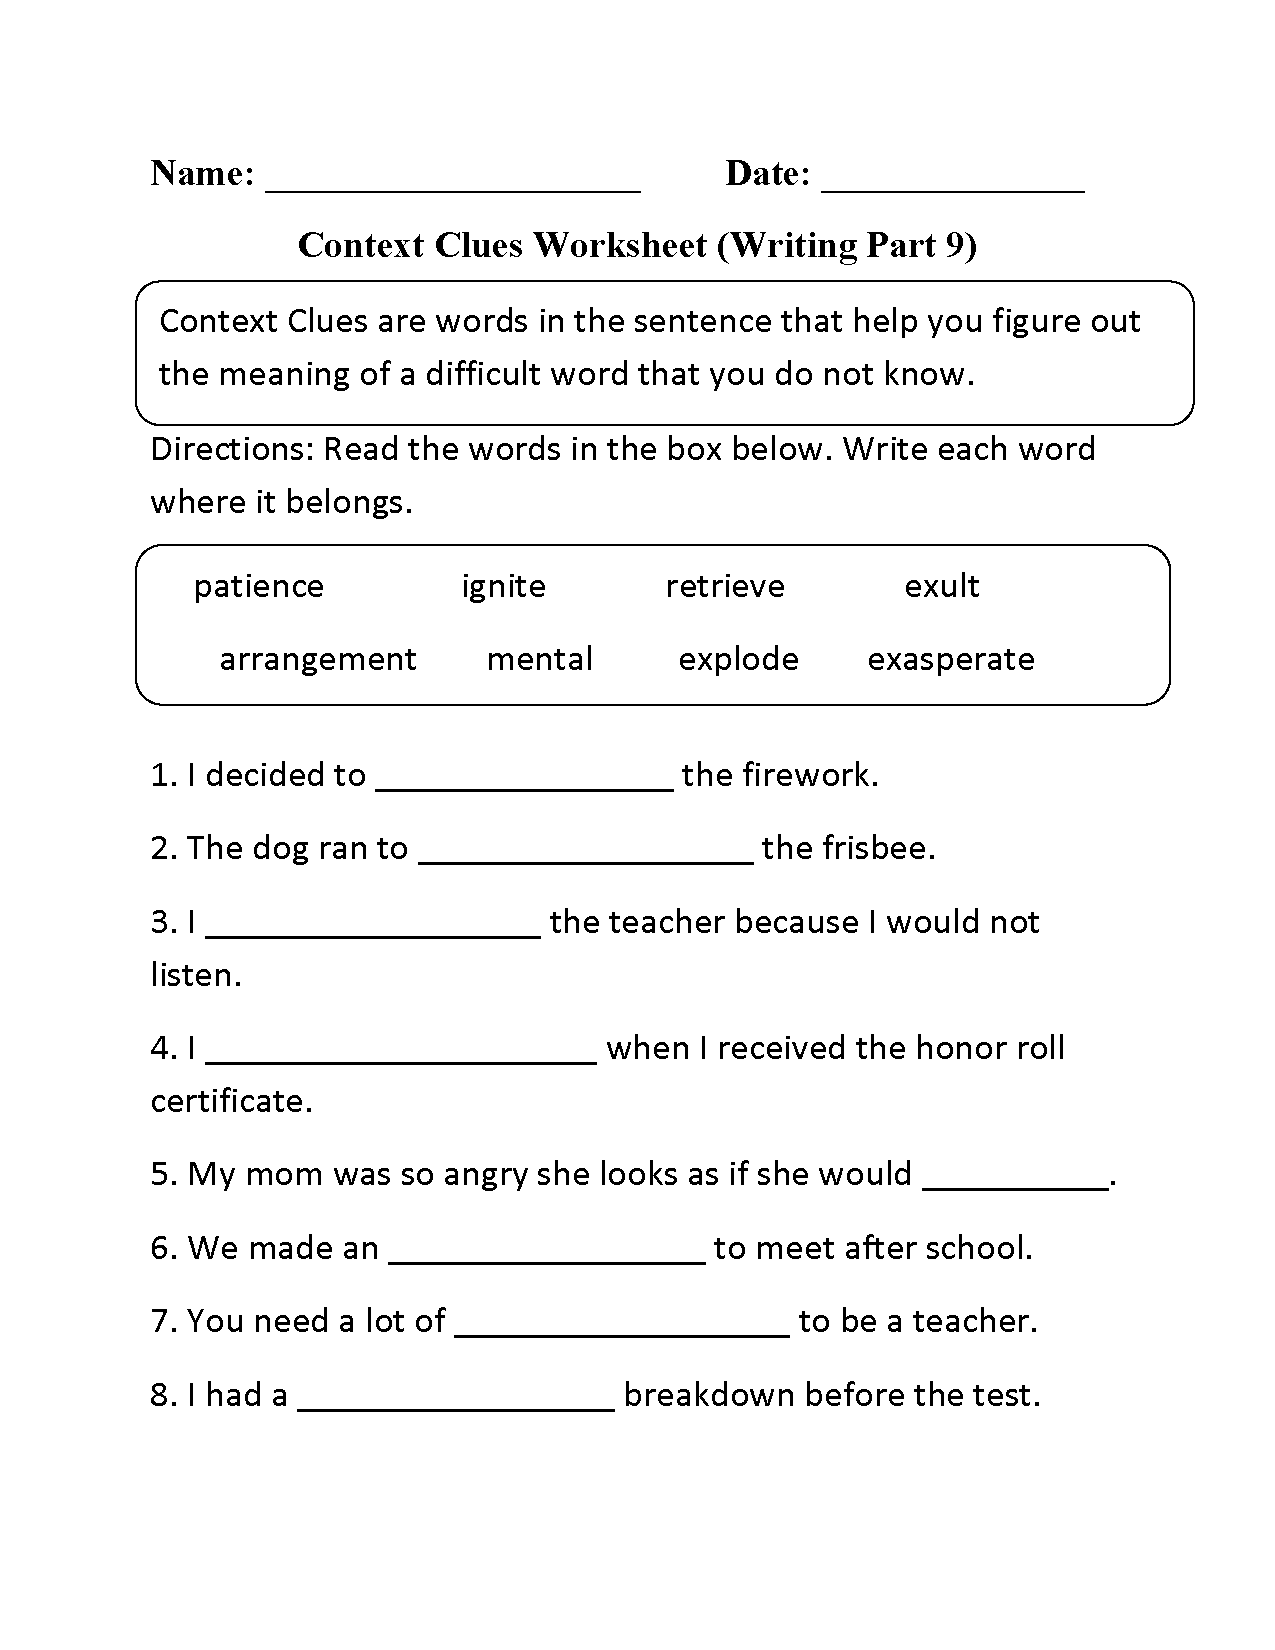 Worksheets 9th Grade Language Arts Worksheets Cheatslist Free Worksheets For Kids Amp Printable